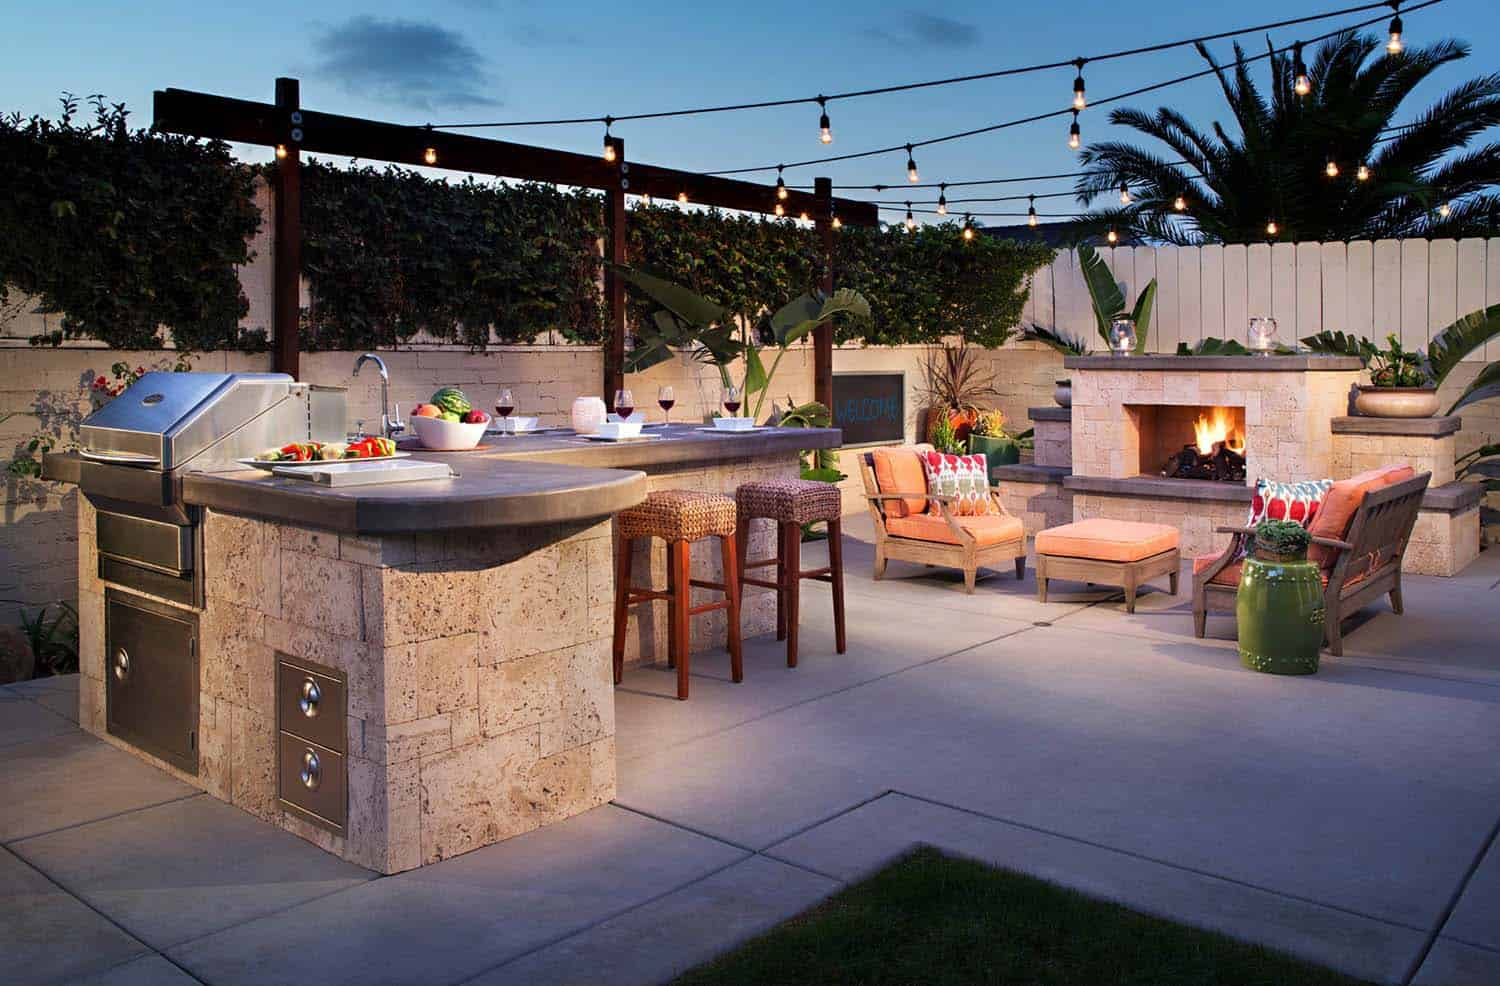 35 Brilliant and inspiring patio ideas for outdoor living ... on Garden Entertainment Area Ideas id=79840